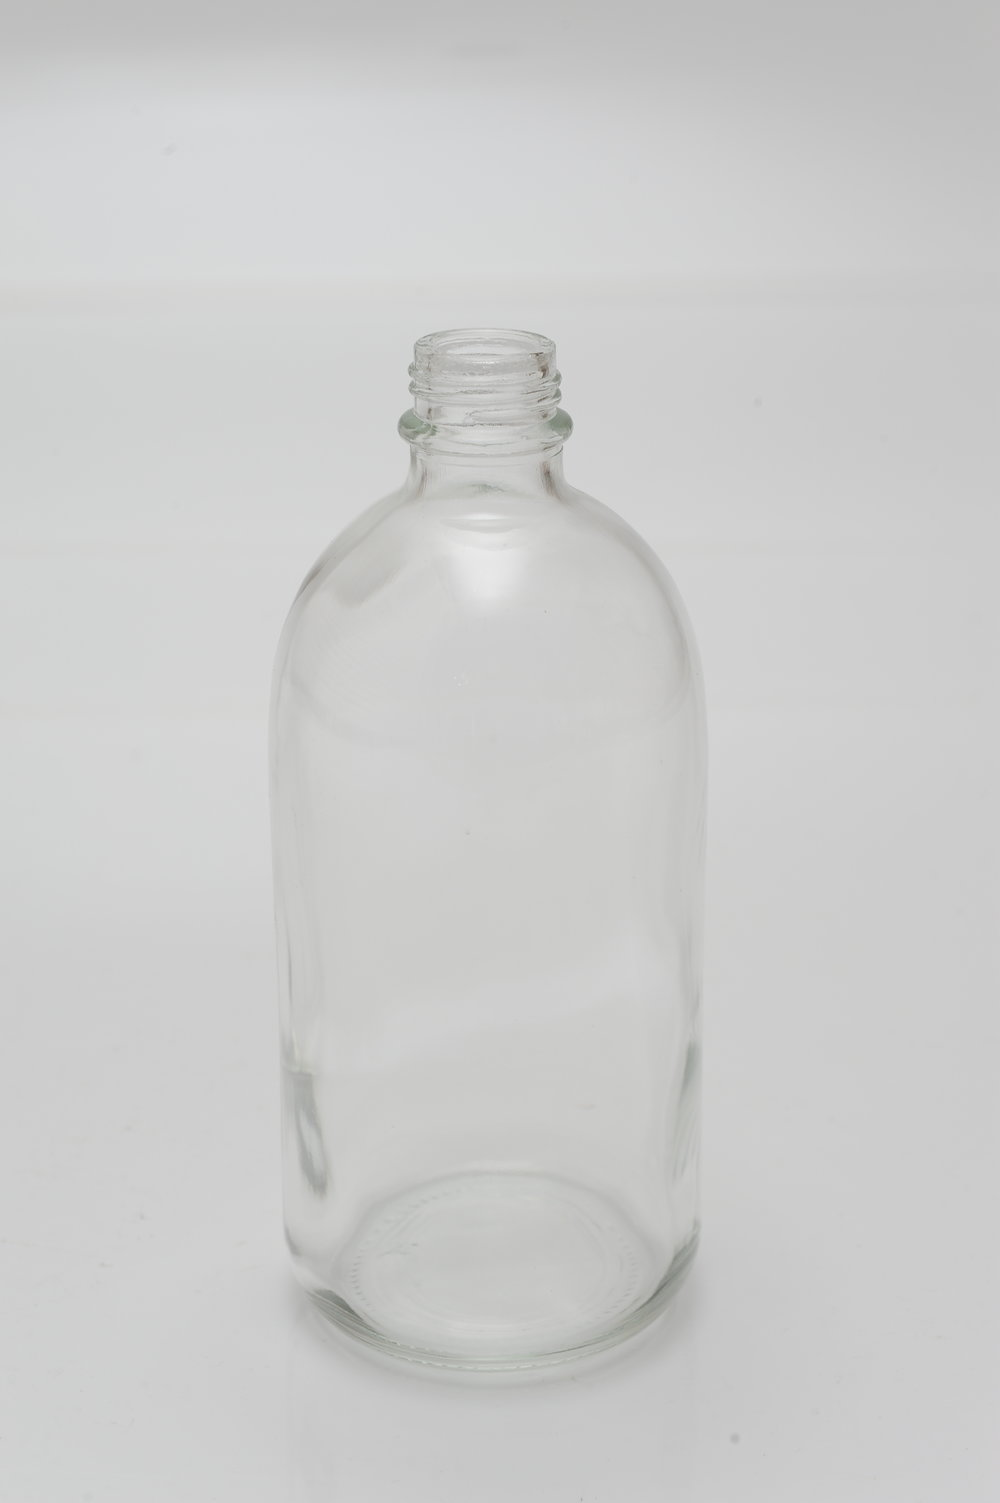 Bottle circular wide $1.50